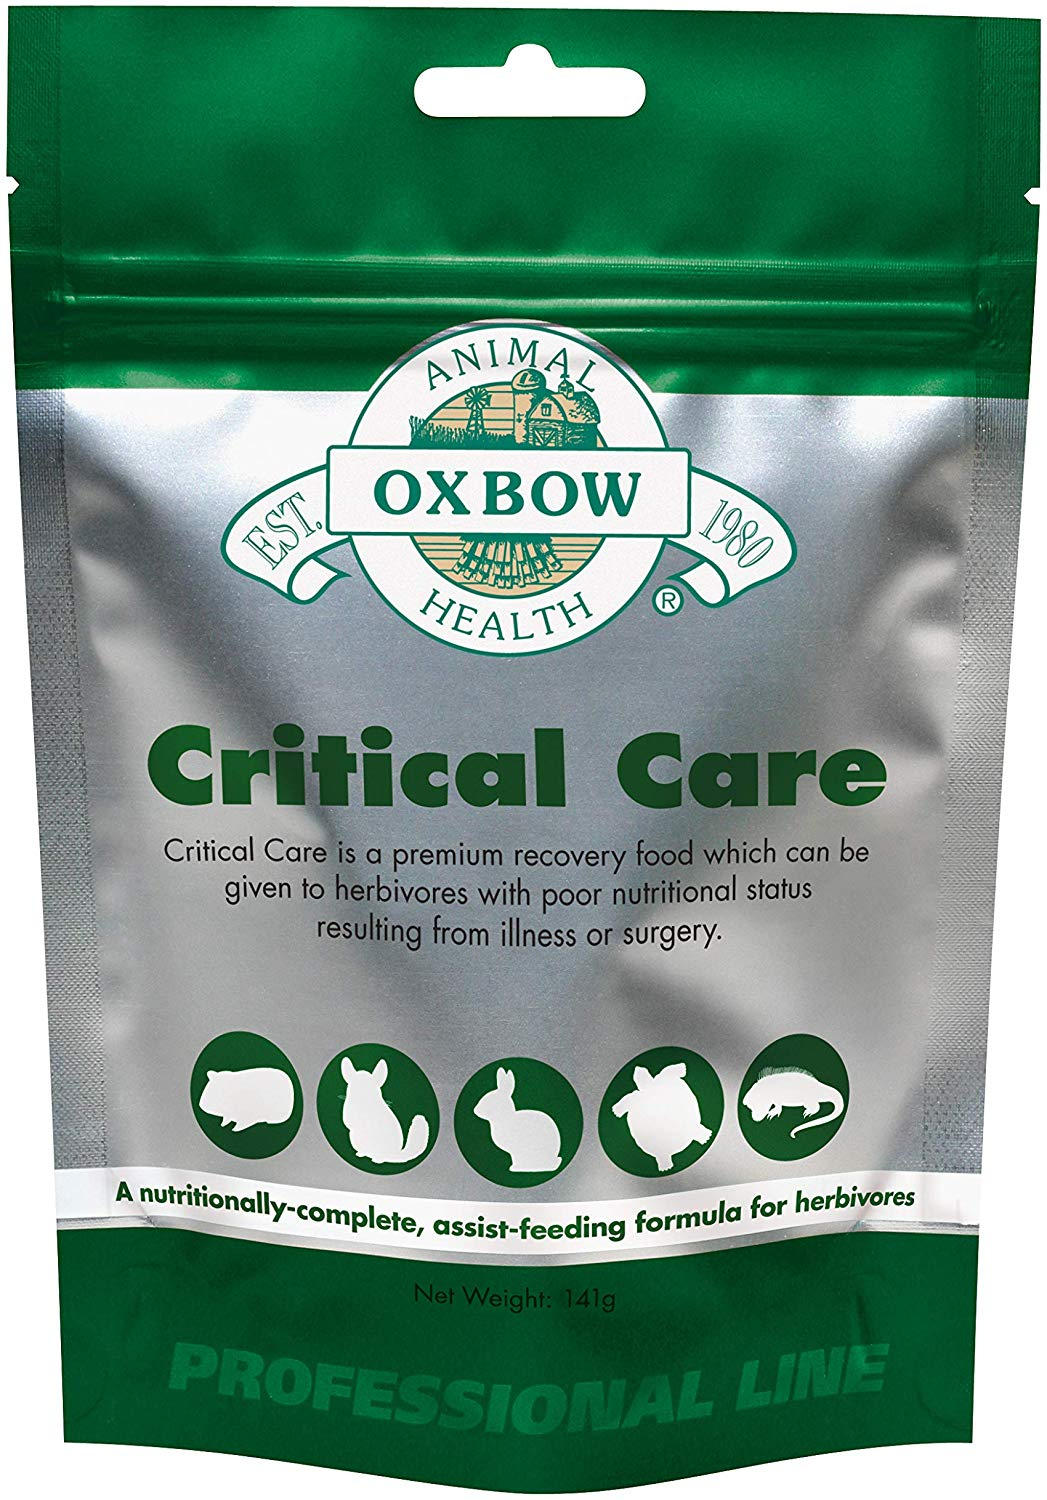 Oxbow Critical Care Anise Flavored Pet Suppliment Image